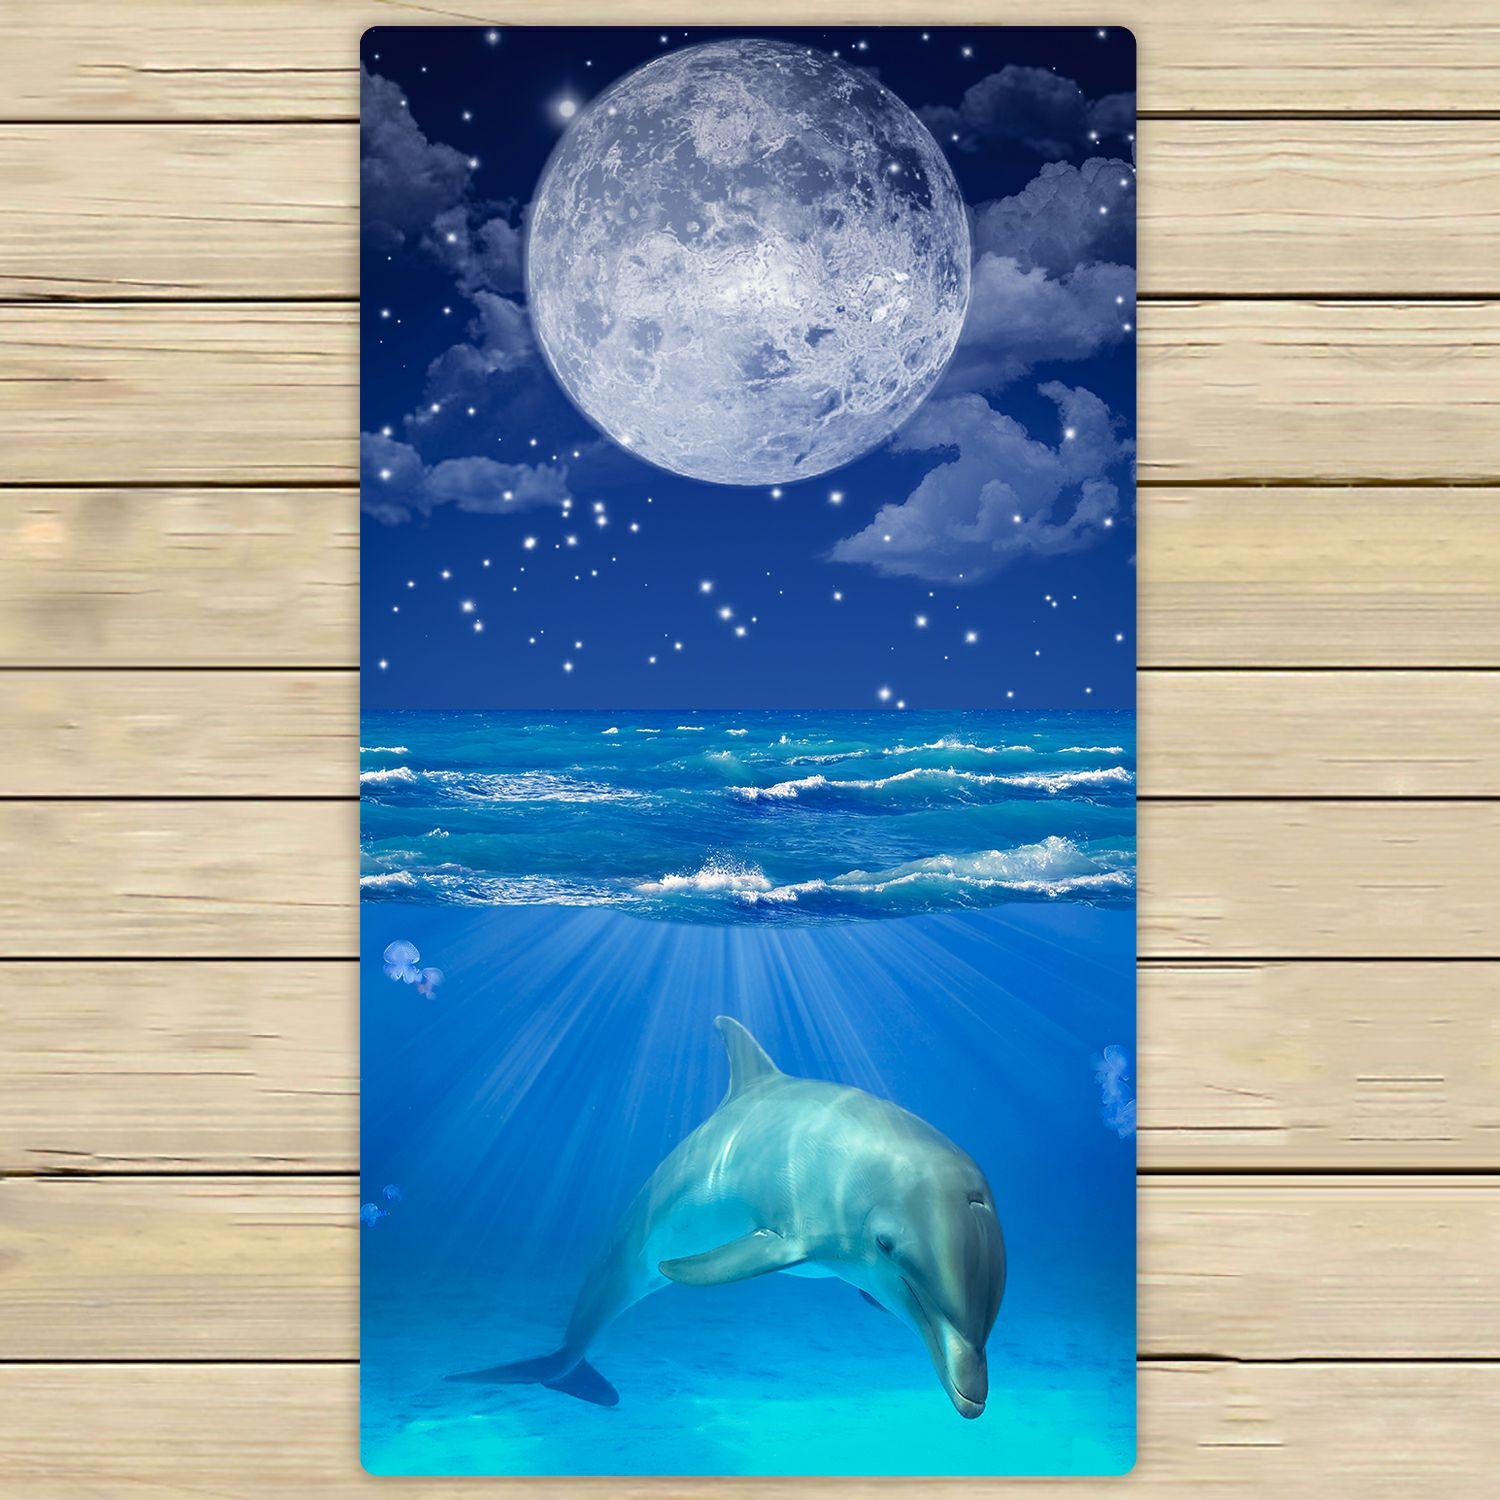 PHFZK Peaceful Night Sky with Moon Stars Towel, Sleeping Dolphin in Deep Sea Hand Towel Bath Bathroom Shower Towels Beach Towel 30x56 inches